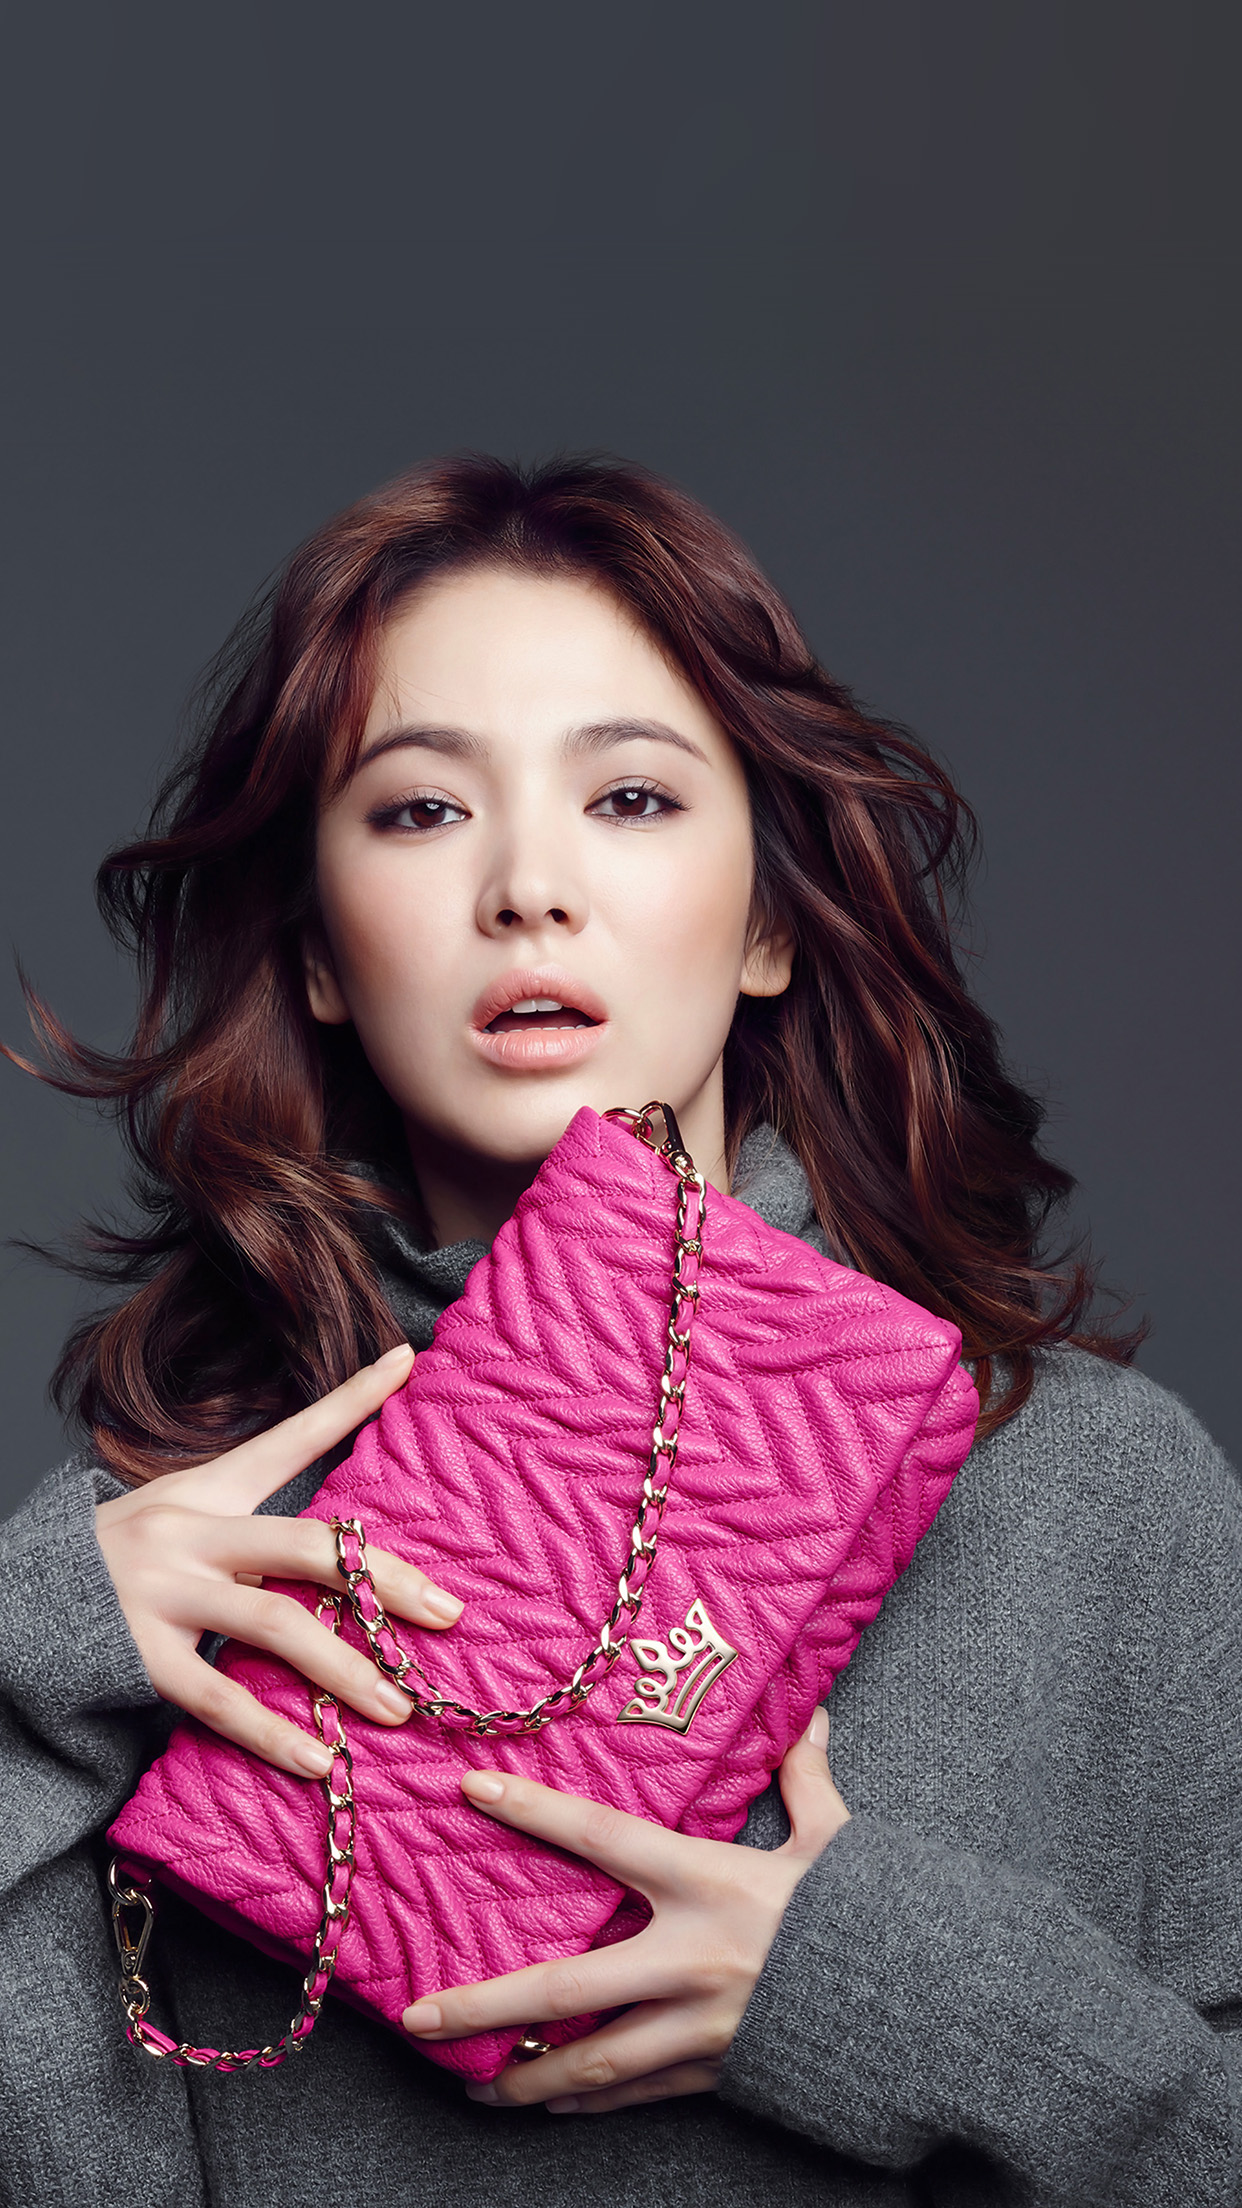 Hh25 Song Hyekyo Film Kpop Korea Beauty Papers Co